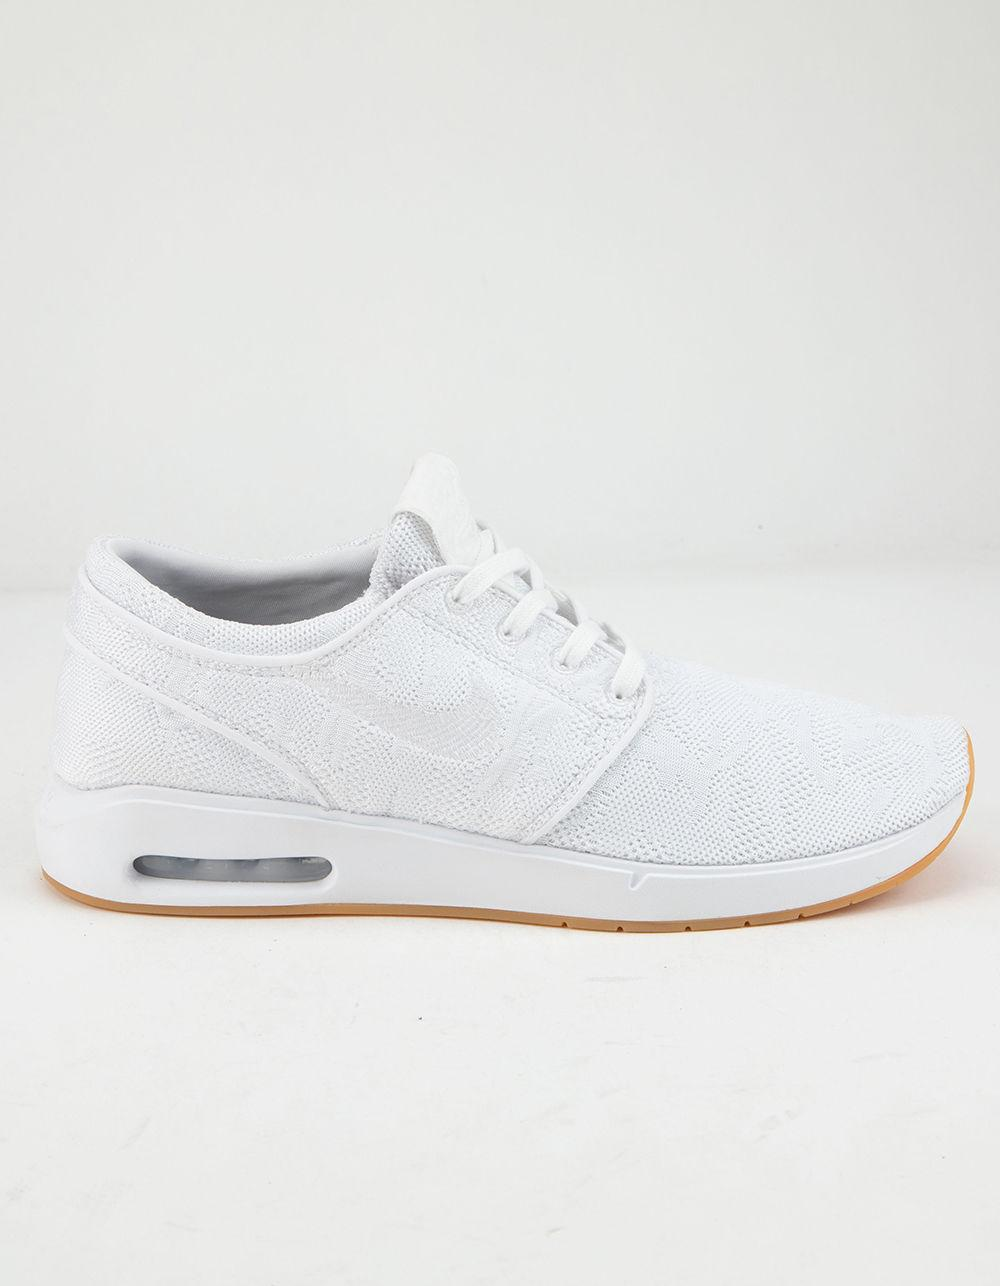 8af128e954 Nike Air Max Stefan Janoski 2 White & White-gum Yellow Shoes in ...